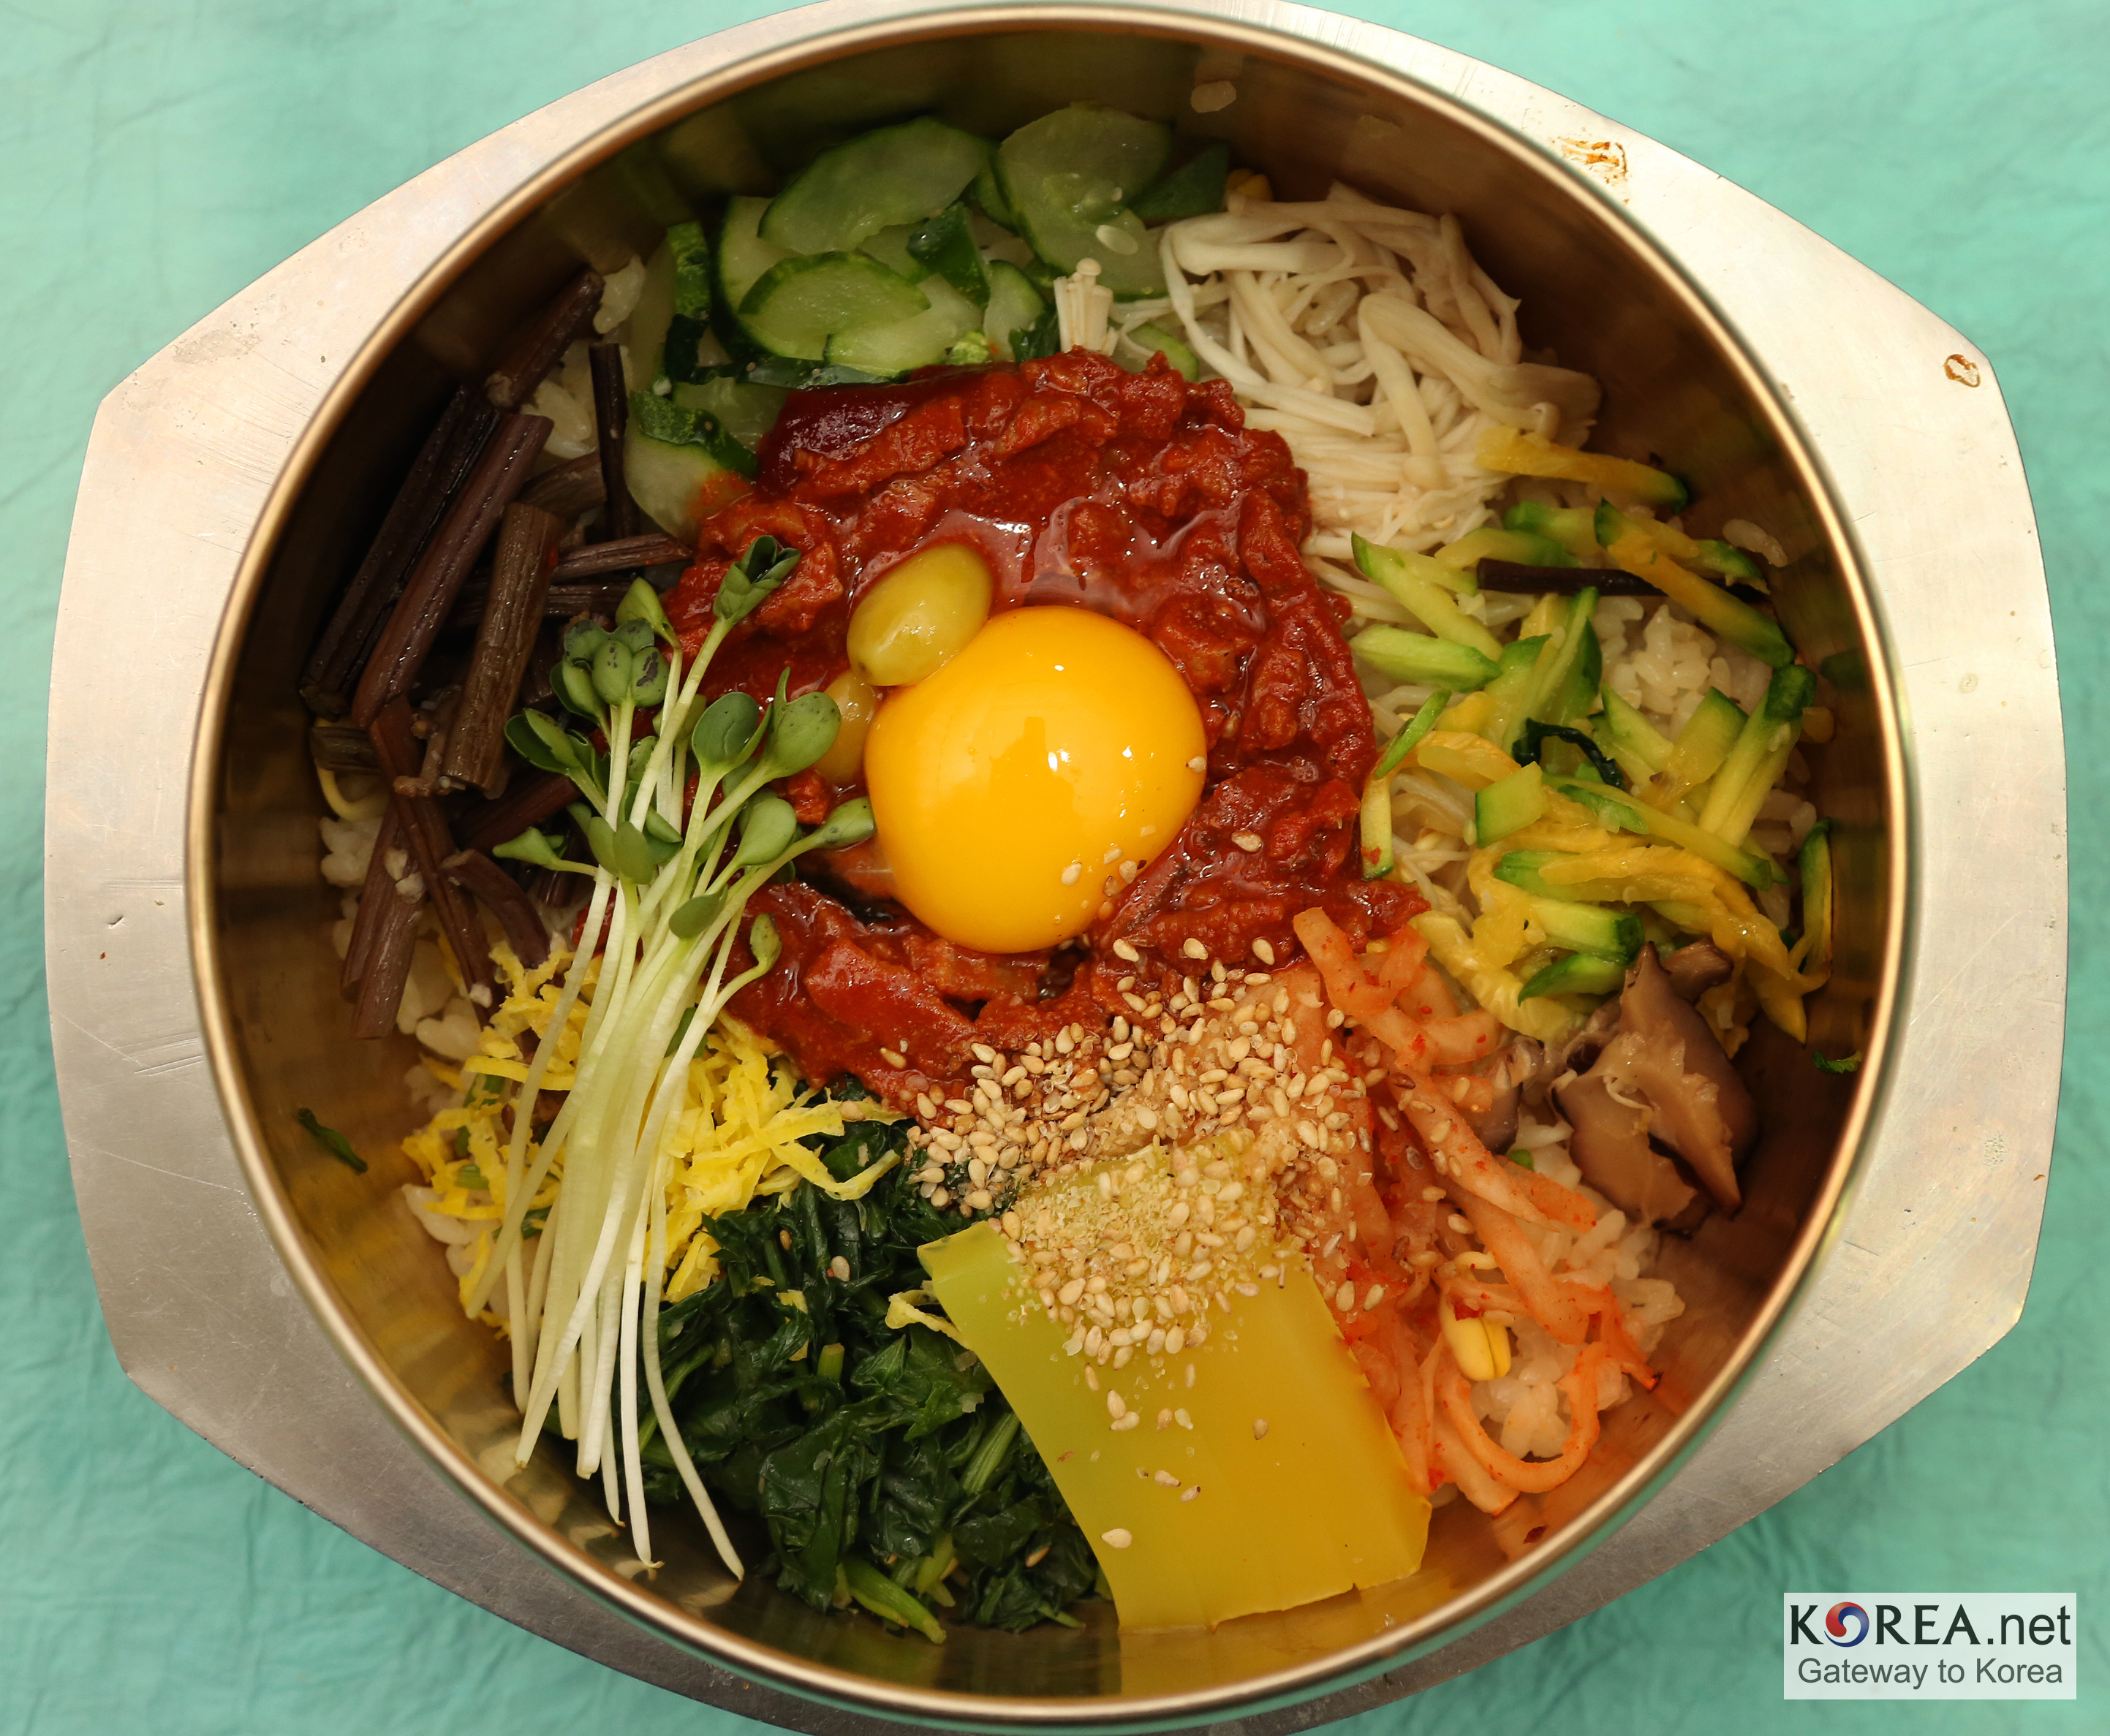 Mixing Bibimbap | Our Foods And Cuisines